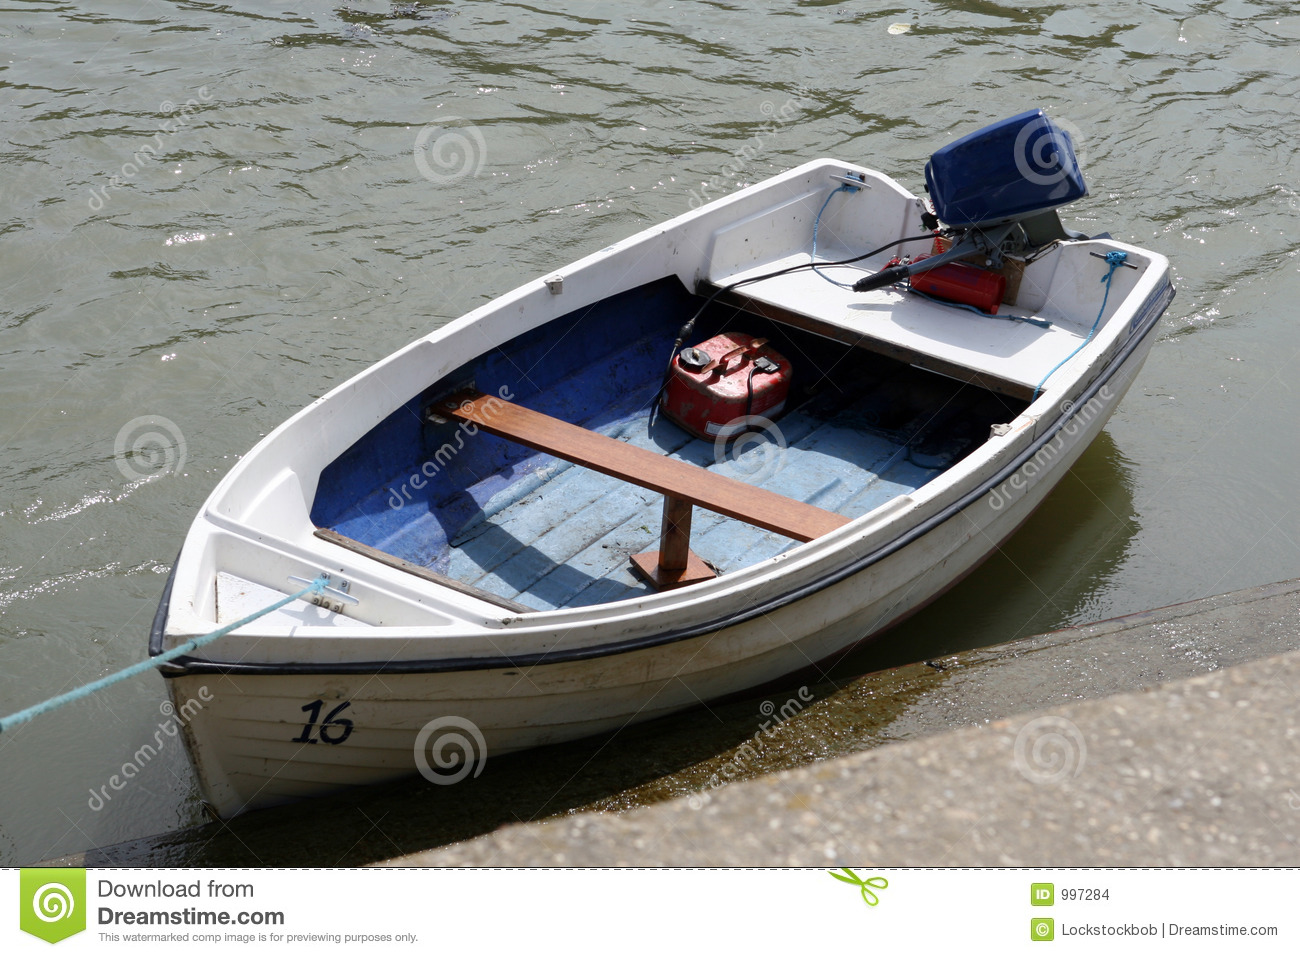 1000  images about boats on Pinterest